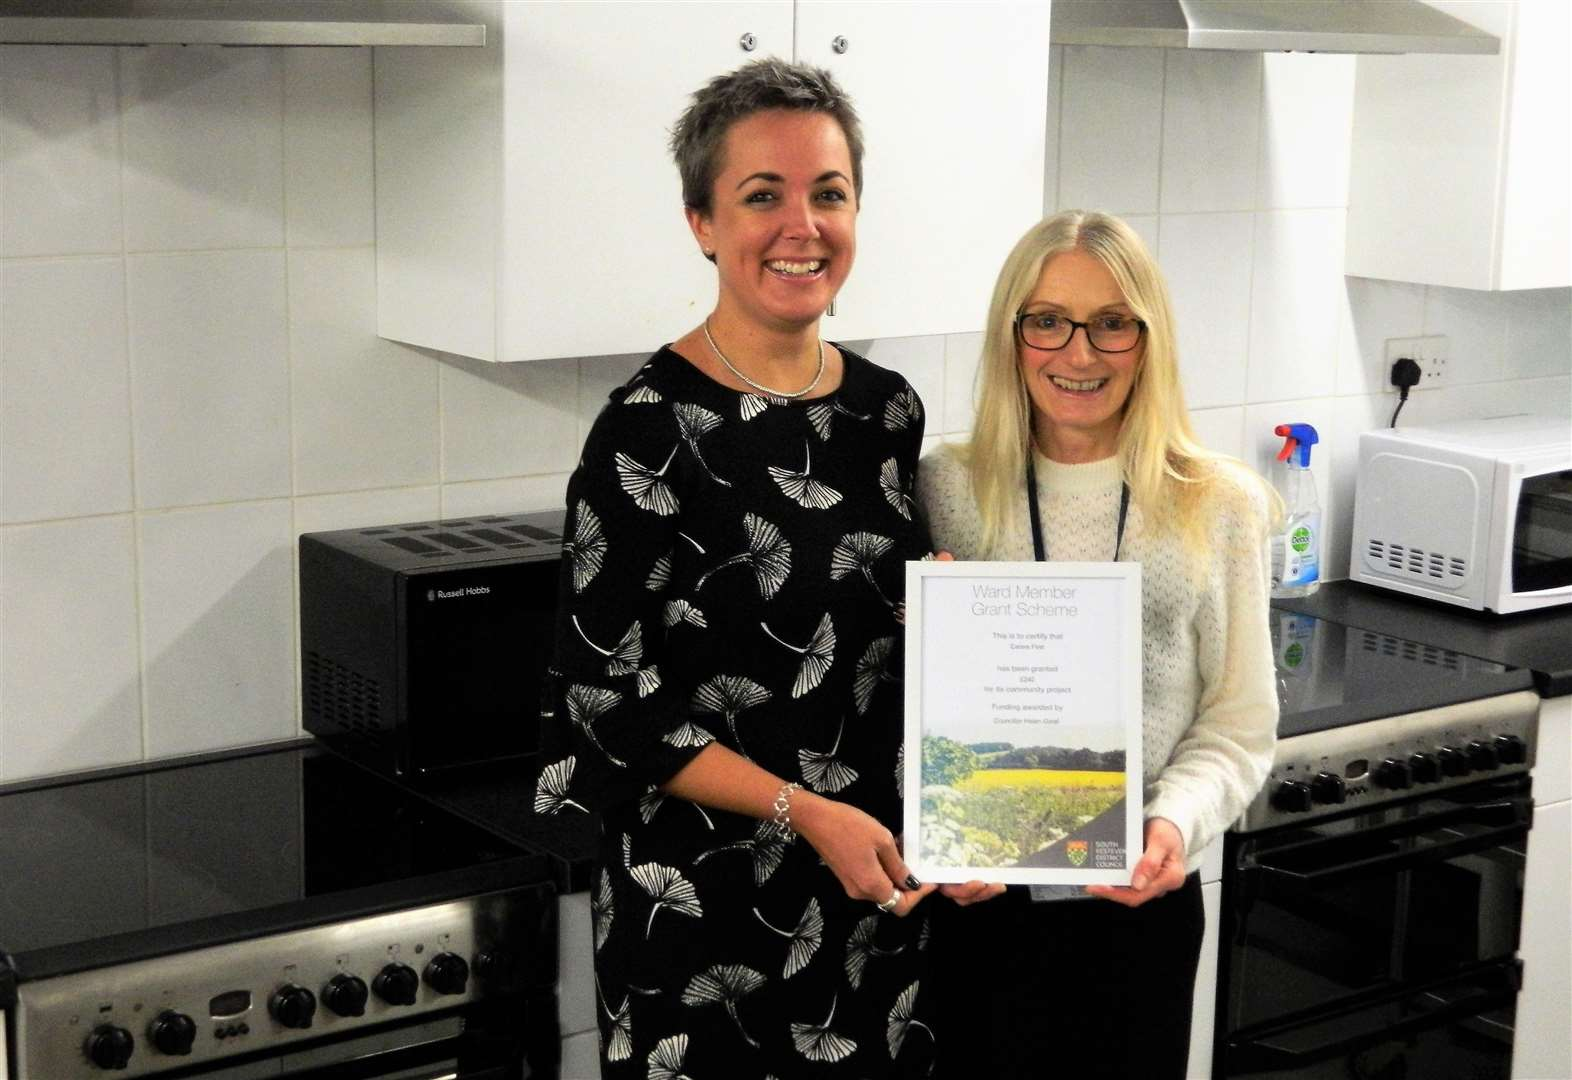 Free healthy cooking course for carers to be launched in Grantham